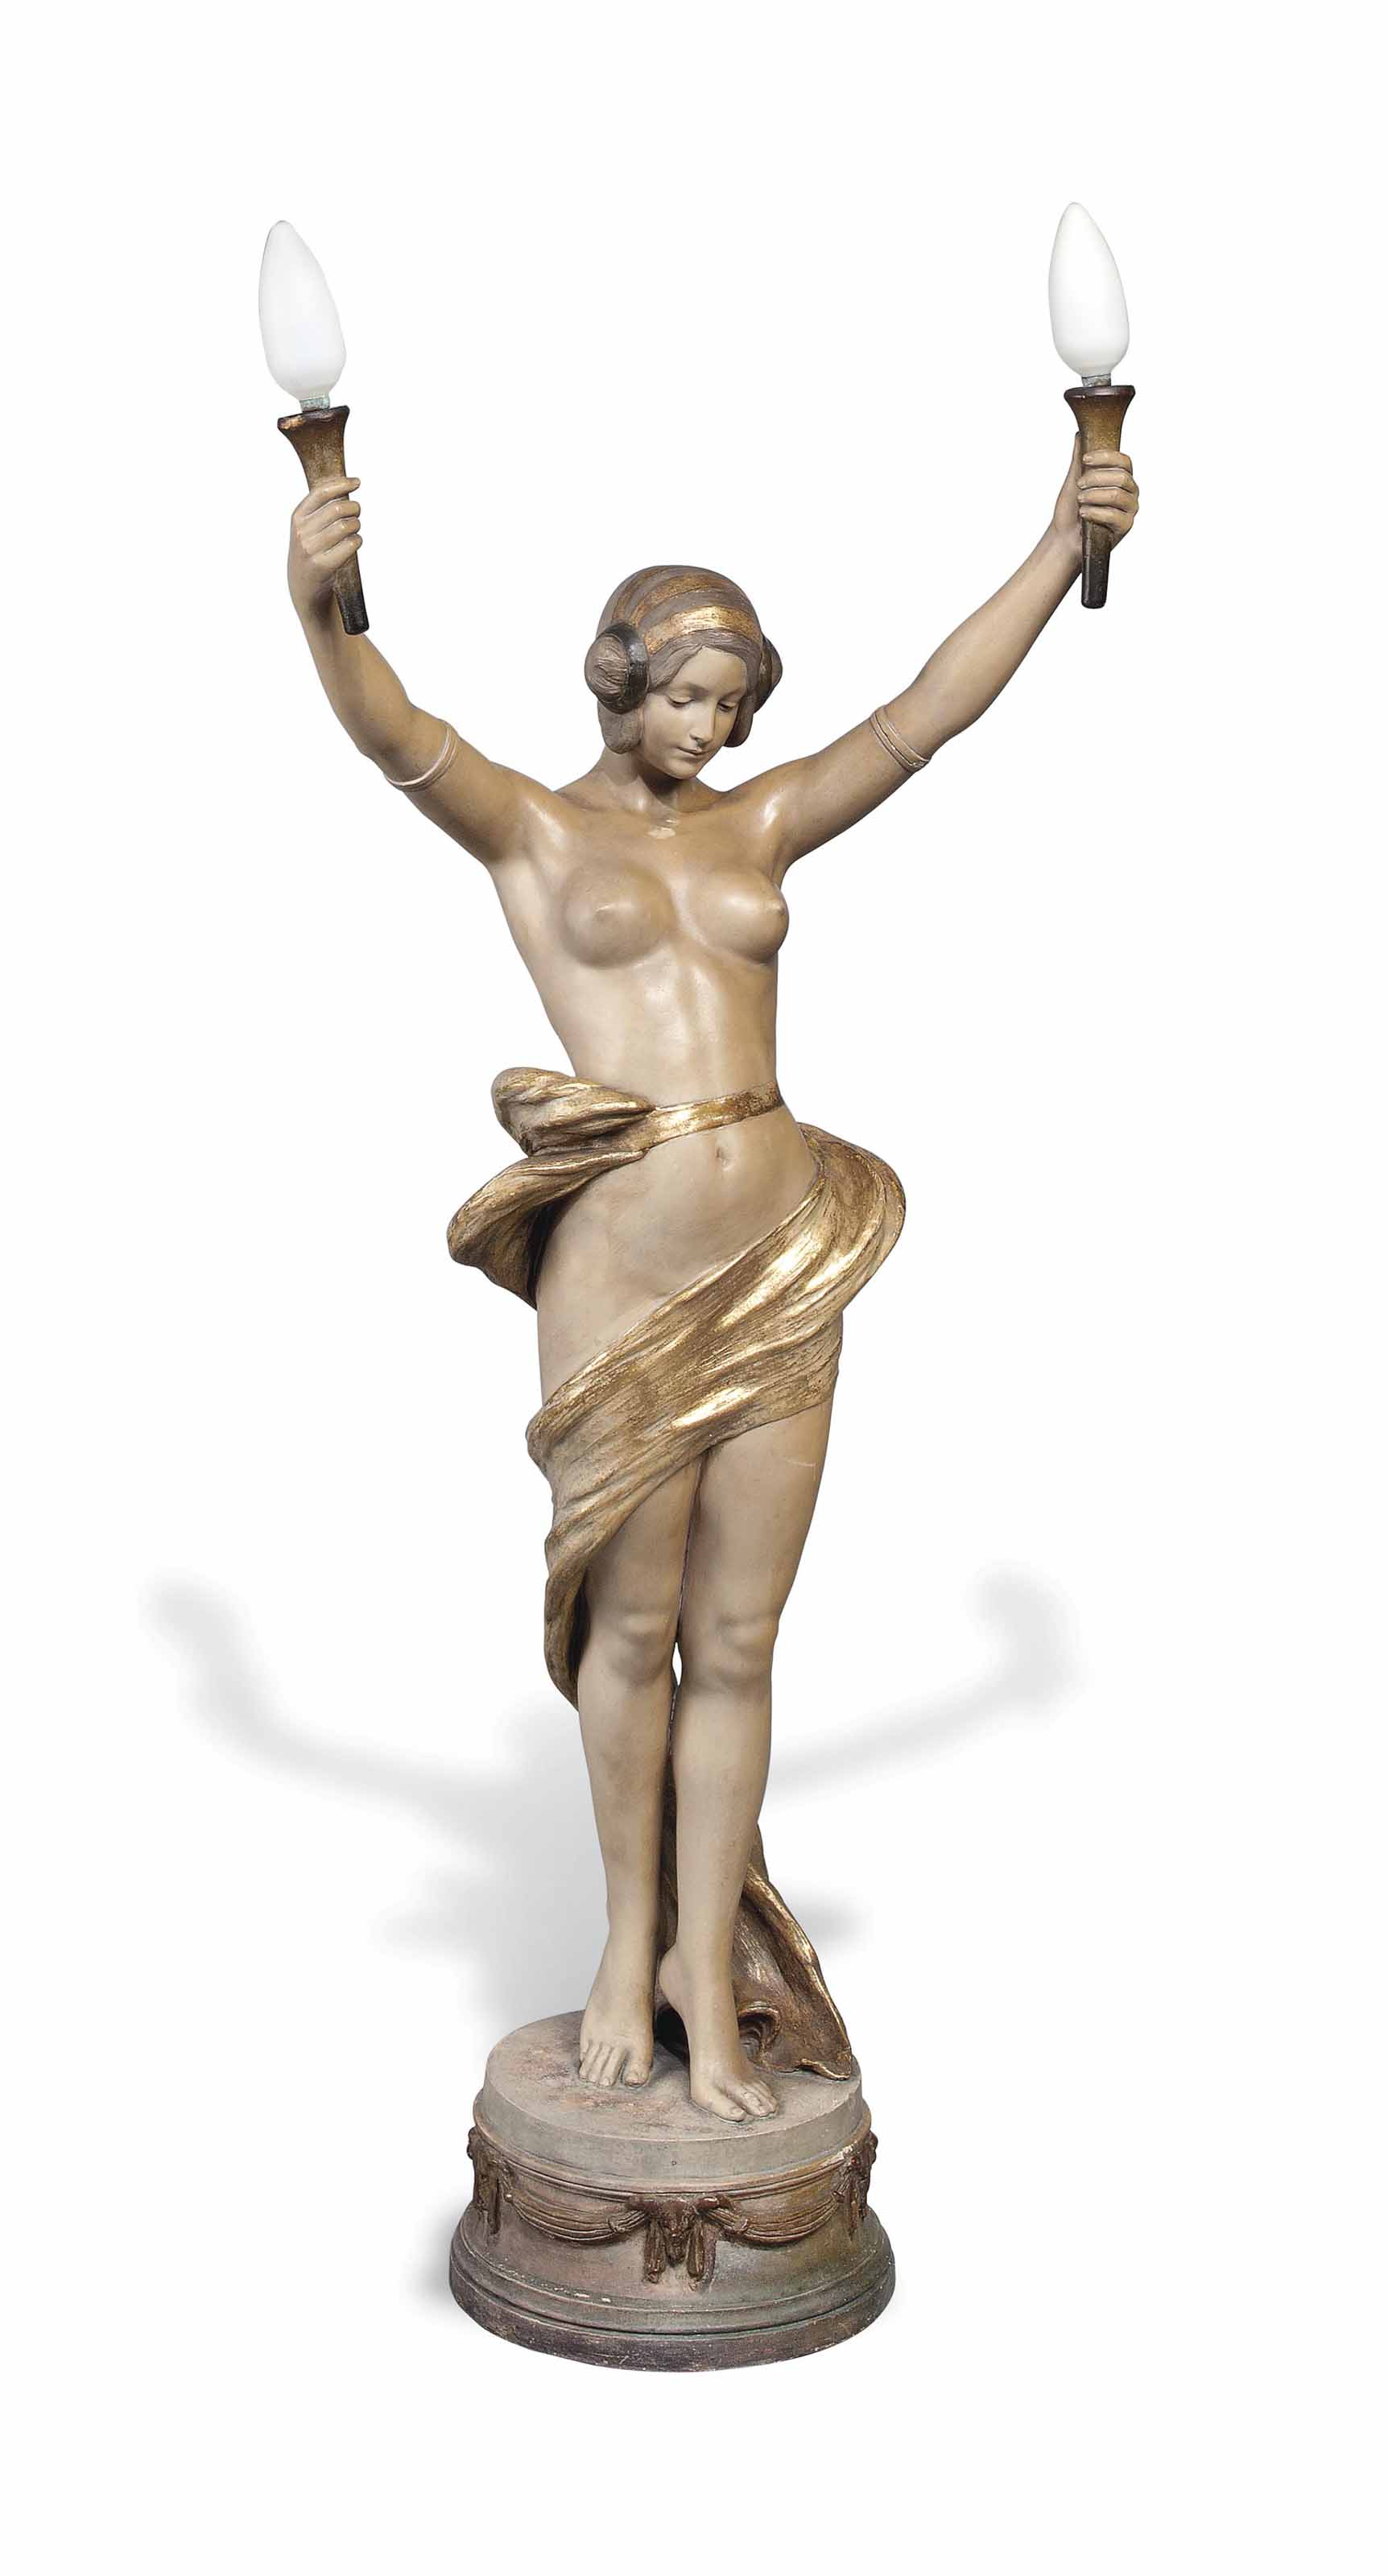 A TALL ART NOUVEAU GOLDSCHEIDER EARTHENWARE FIGURAL LAMP AFTER A MODEL BY LAVERY